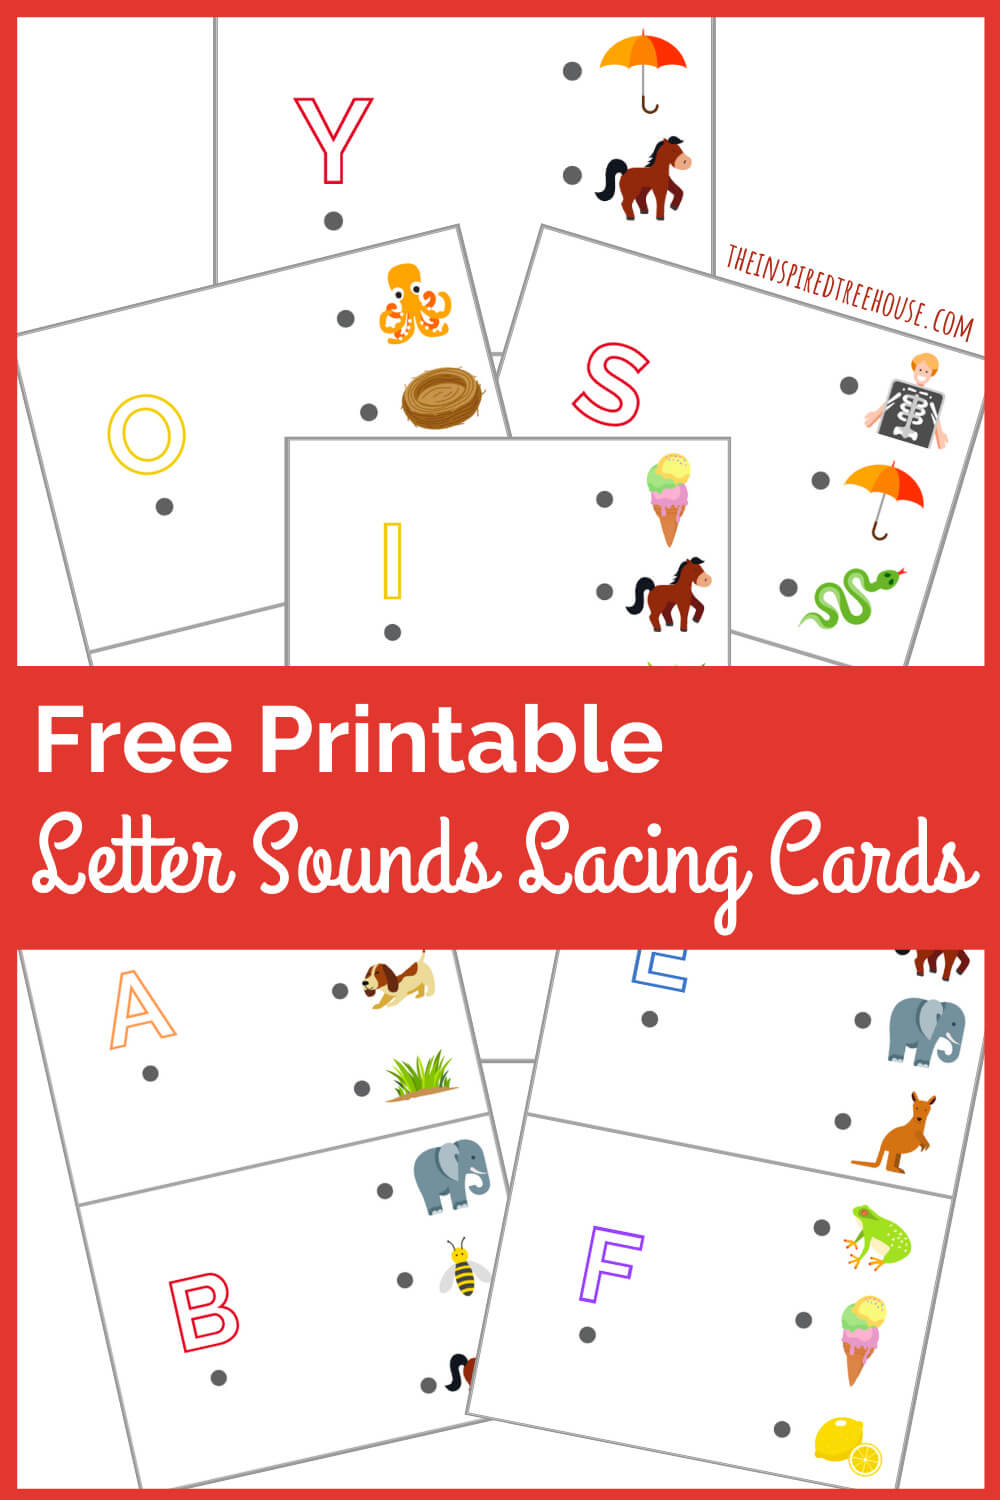 Free printable lacing cards with letters and colorful pictures